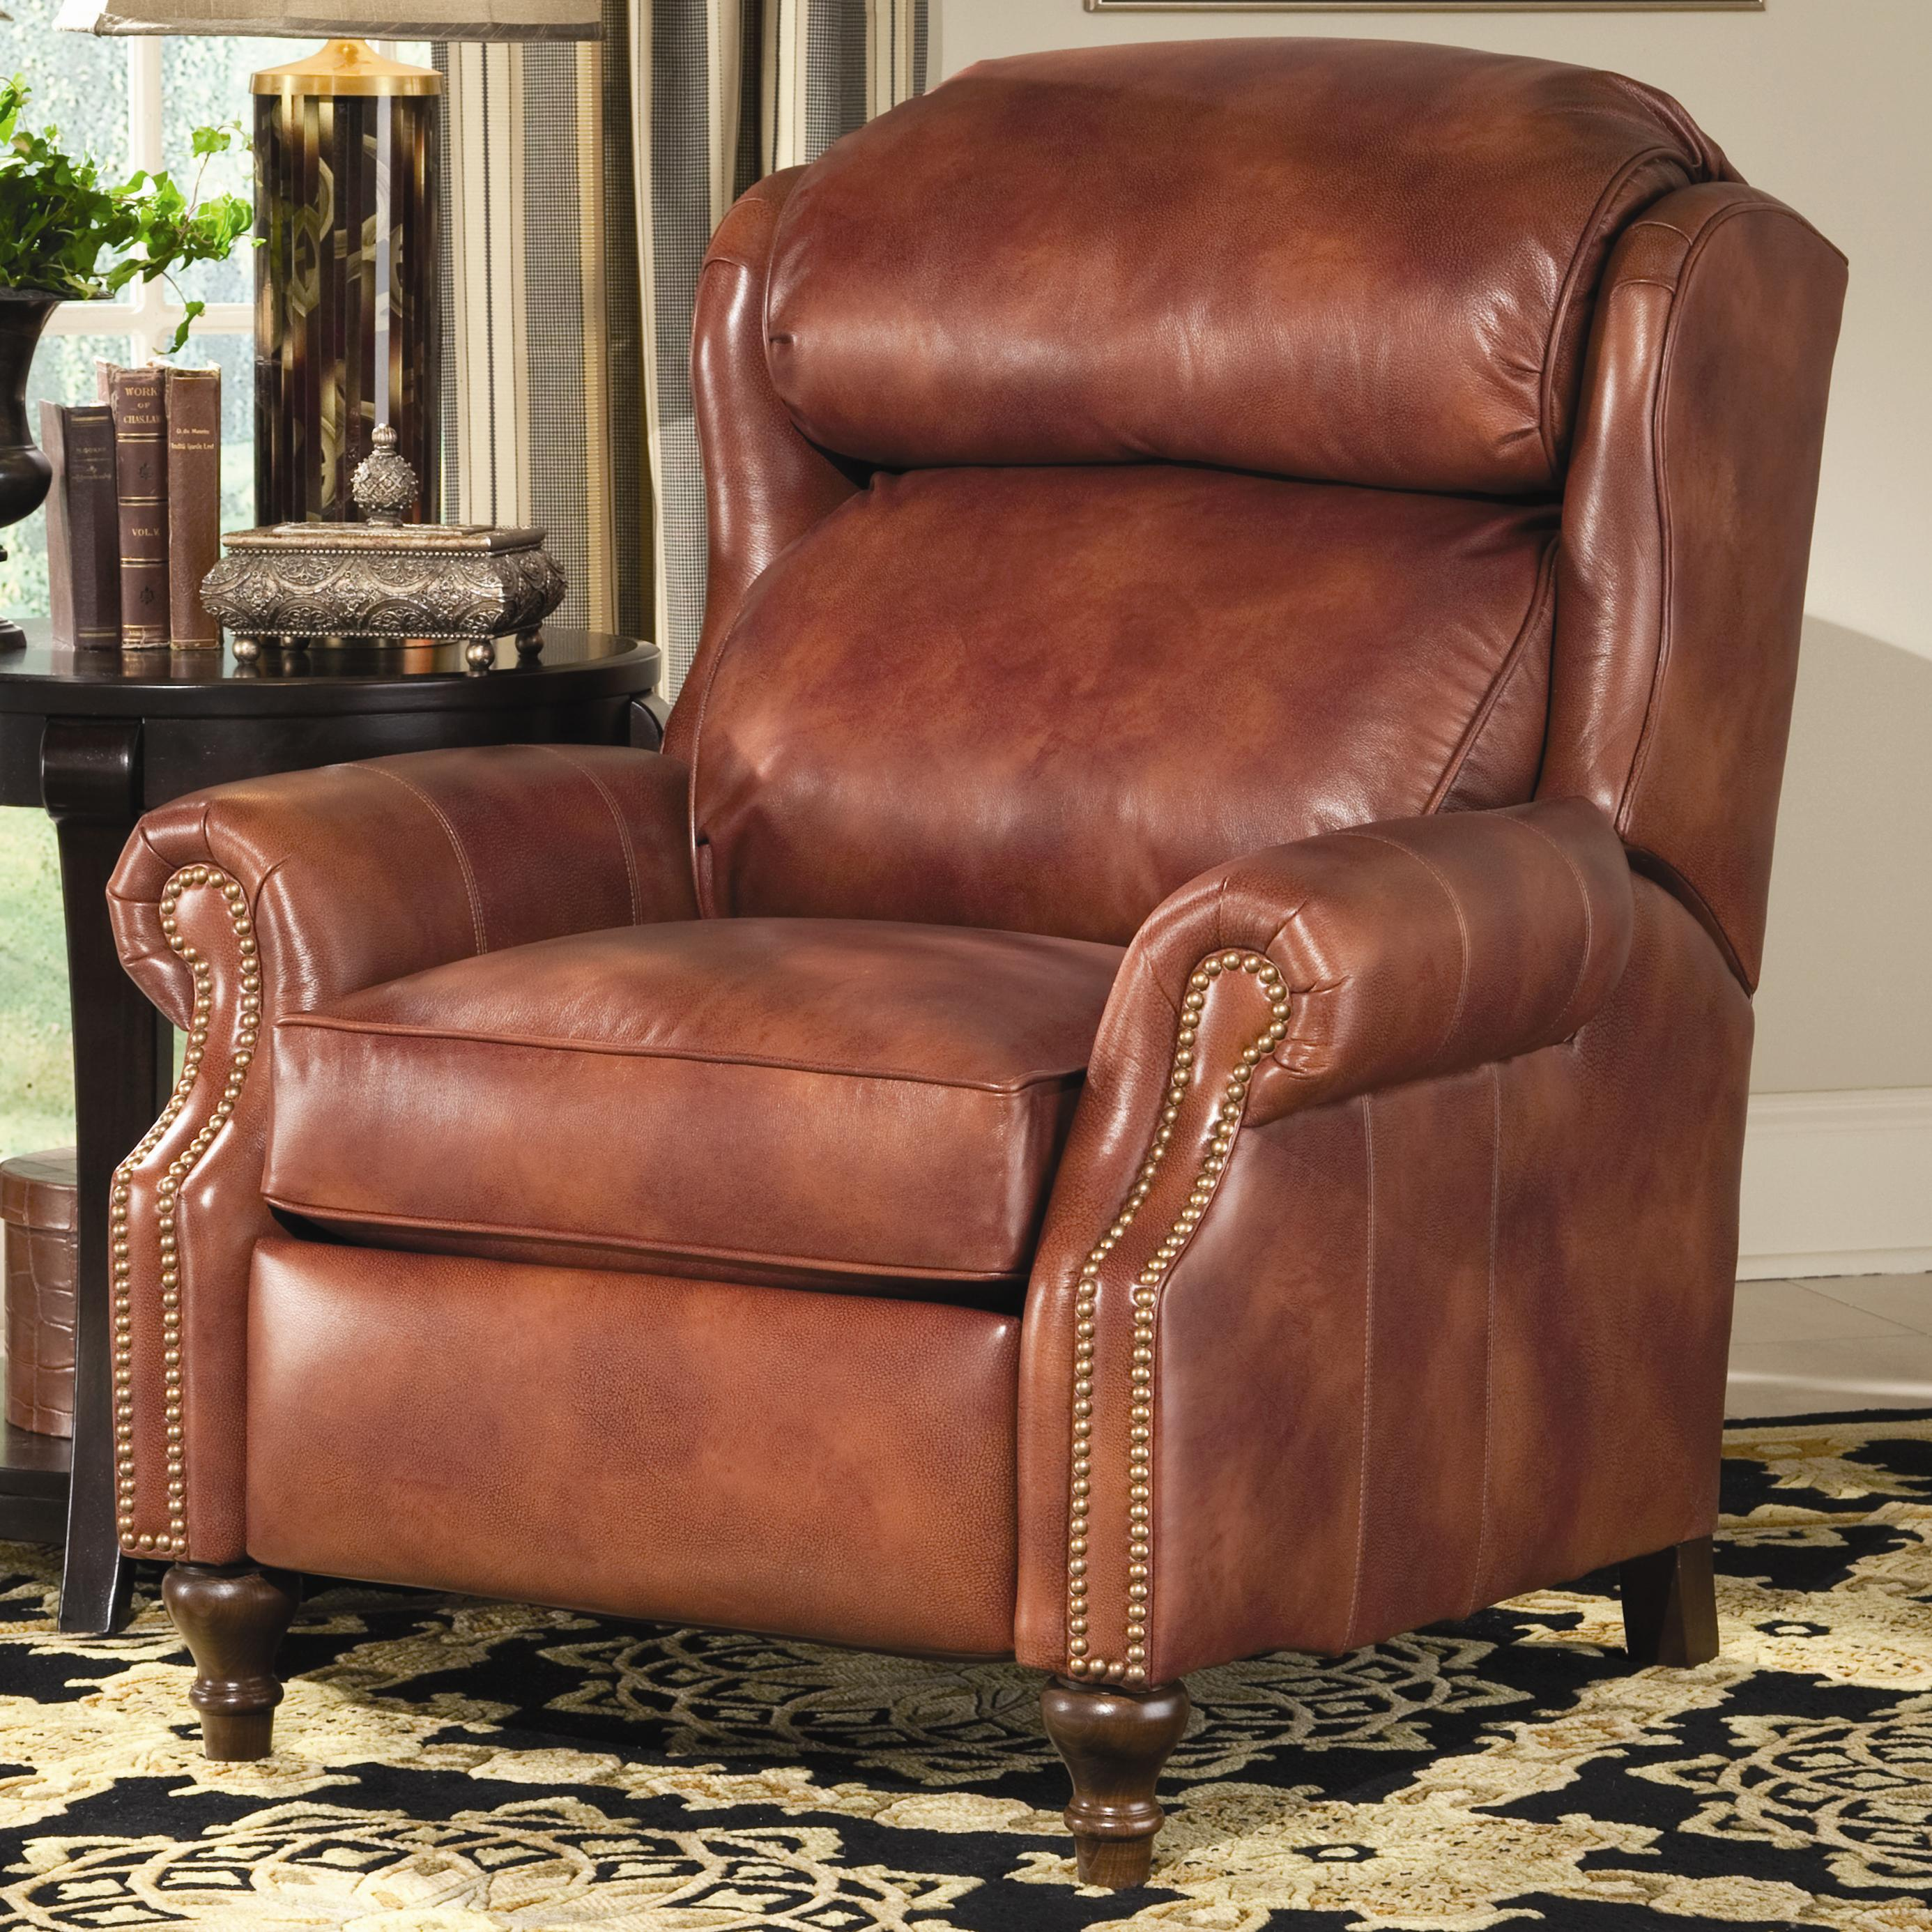 Recliners  Big/Tall Motorized Recliner by Smith Brothers at Saugerties Furniture Mart